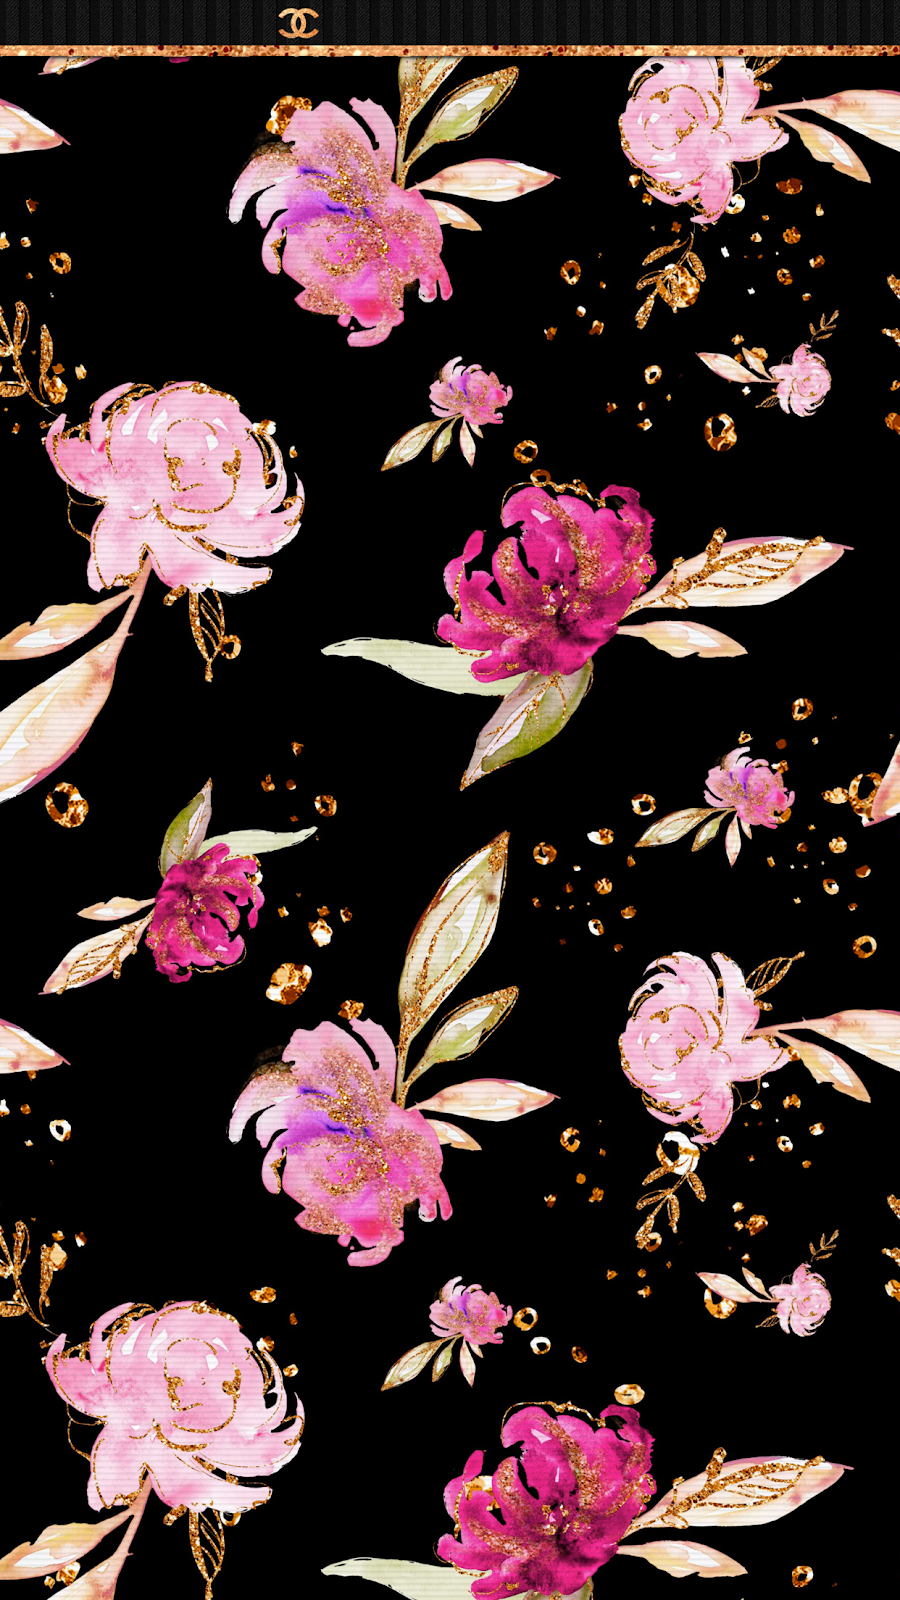 Wonderful   Wallpaper Home Screen Pattern - 91D4E156-5D02-48DC-B9F8-56C699E70D69  Trends_246032.png